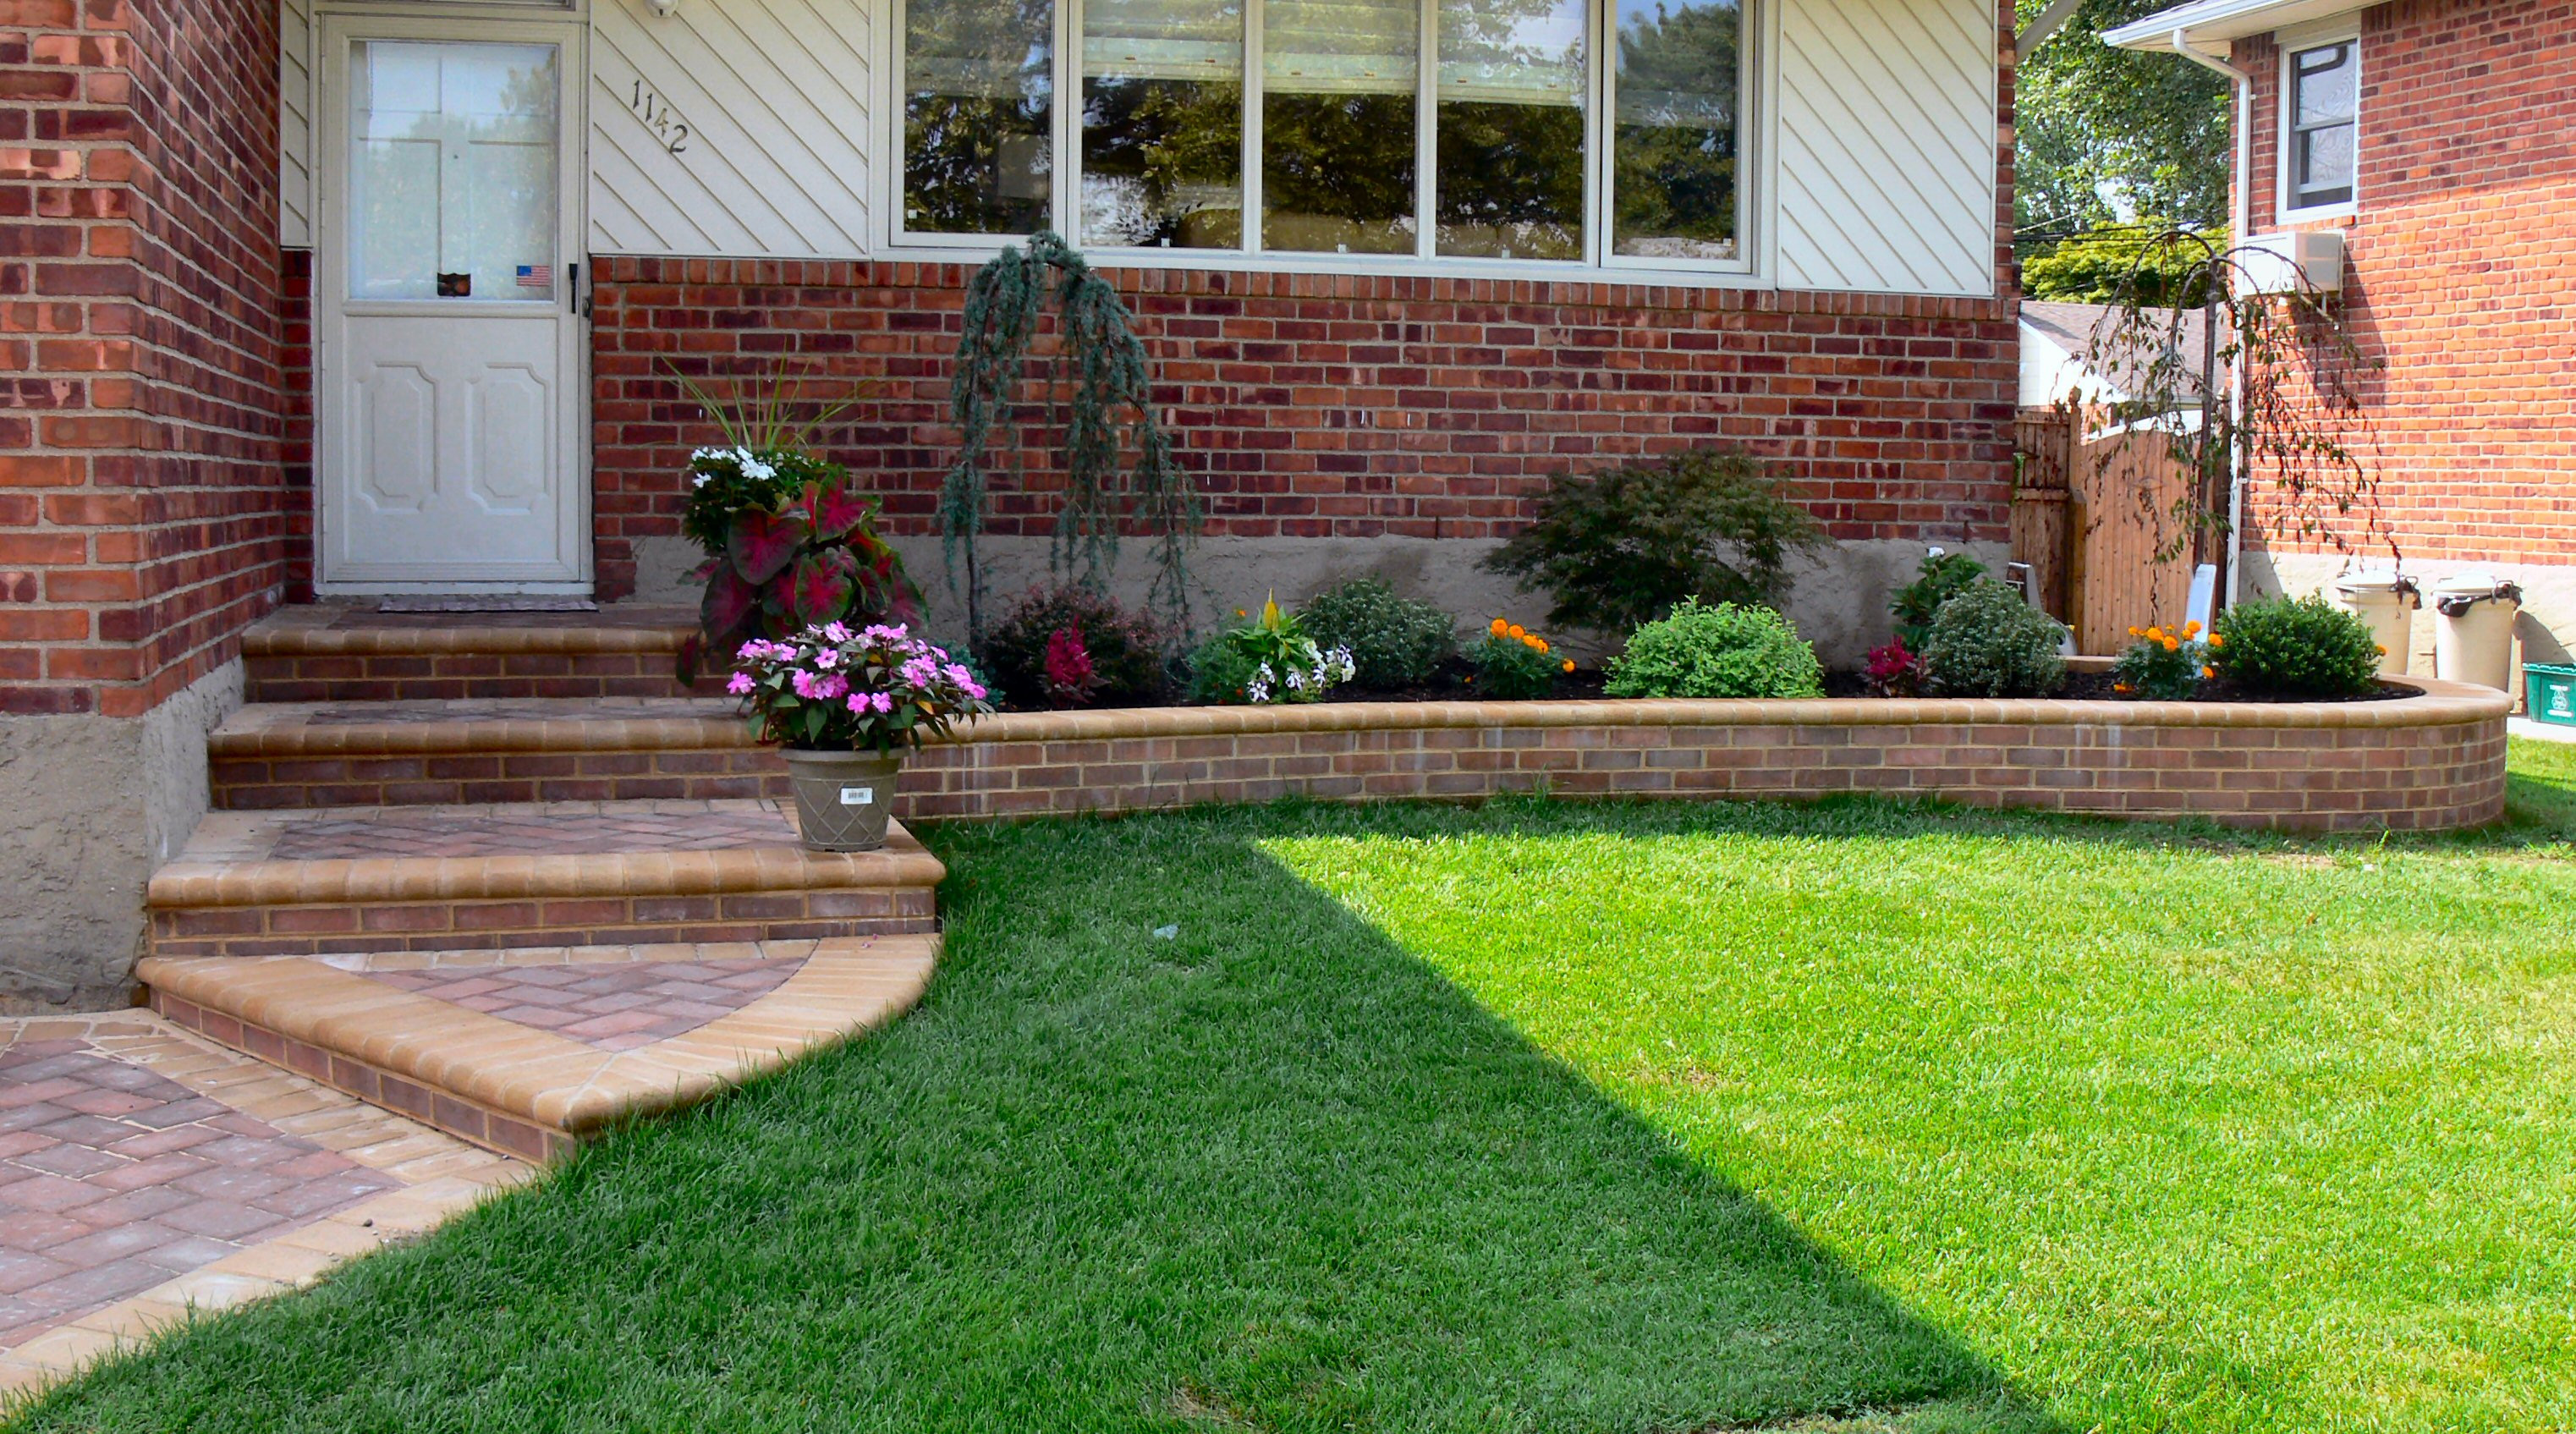 Best ideas about Diy Landscape Design . Save or Pin Garden Design With Diy Backyard Landscaping A Now.